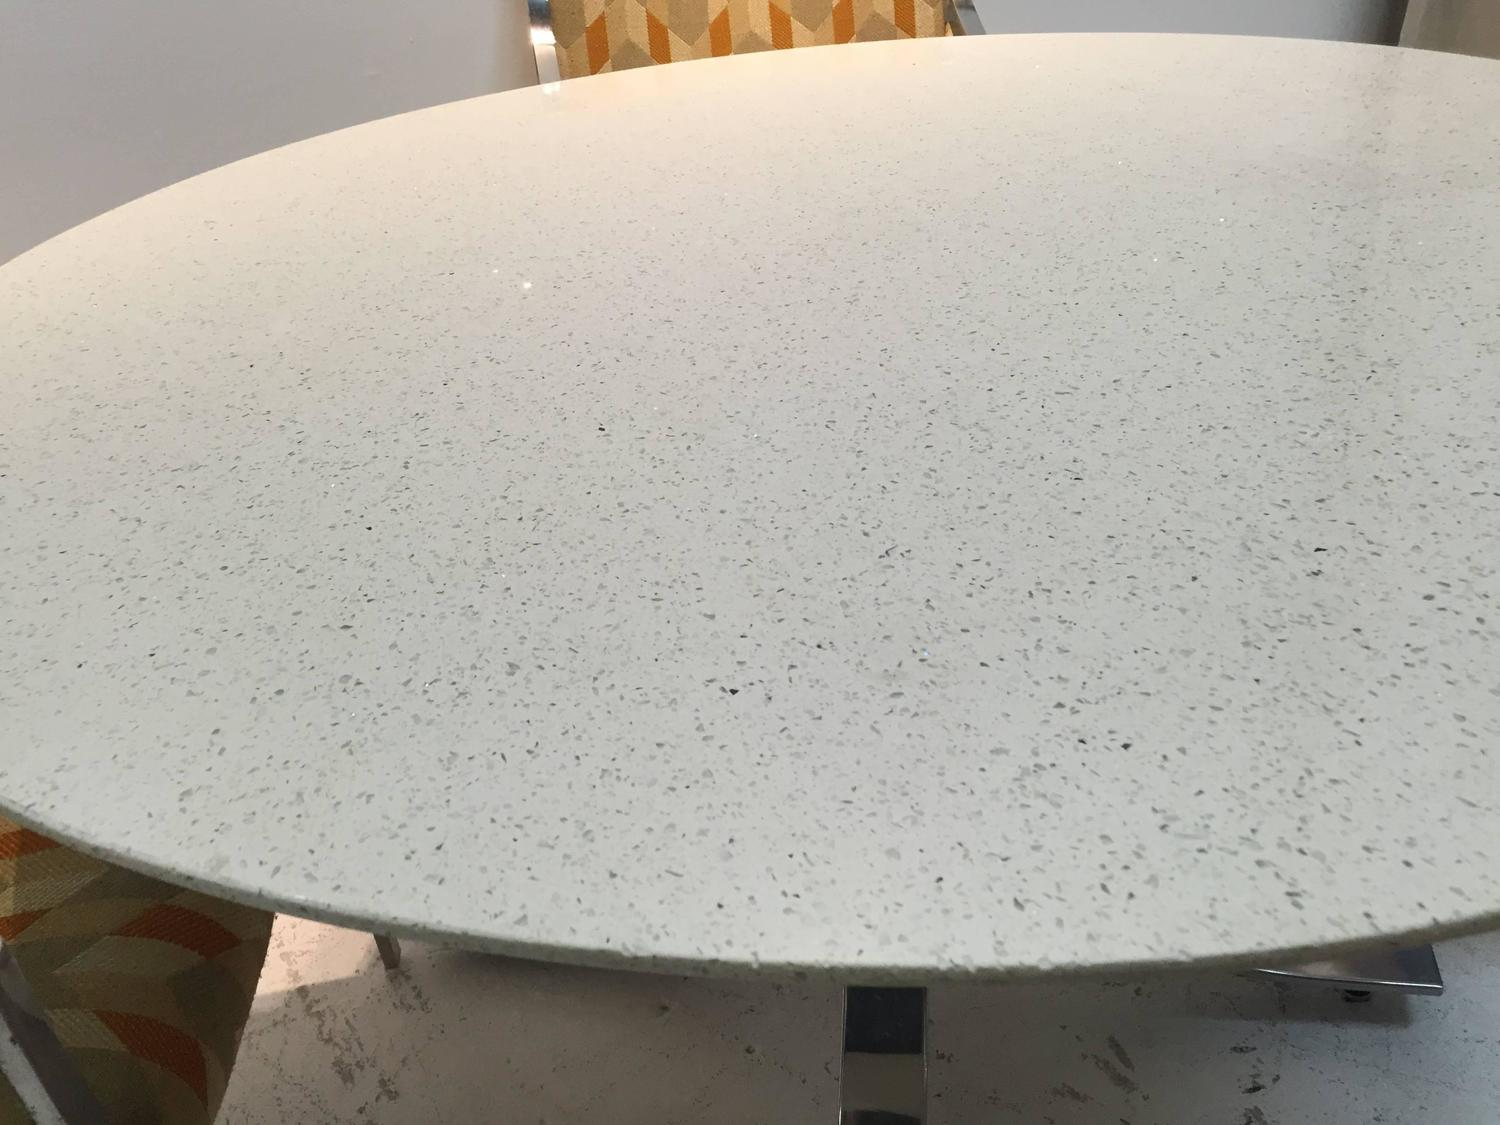 Four Legged Chrome Base Round Dining Table with White  : IMG1383z from www.1stdibs.com size 1500 x 1125 jpeg 142kB